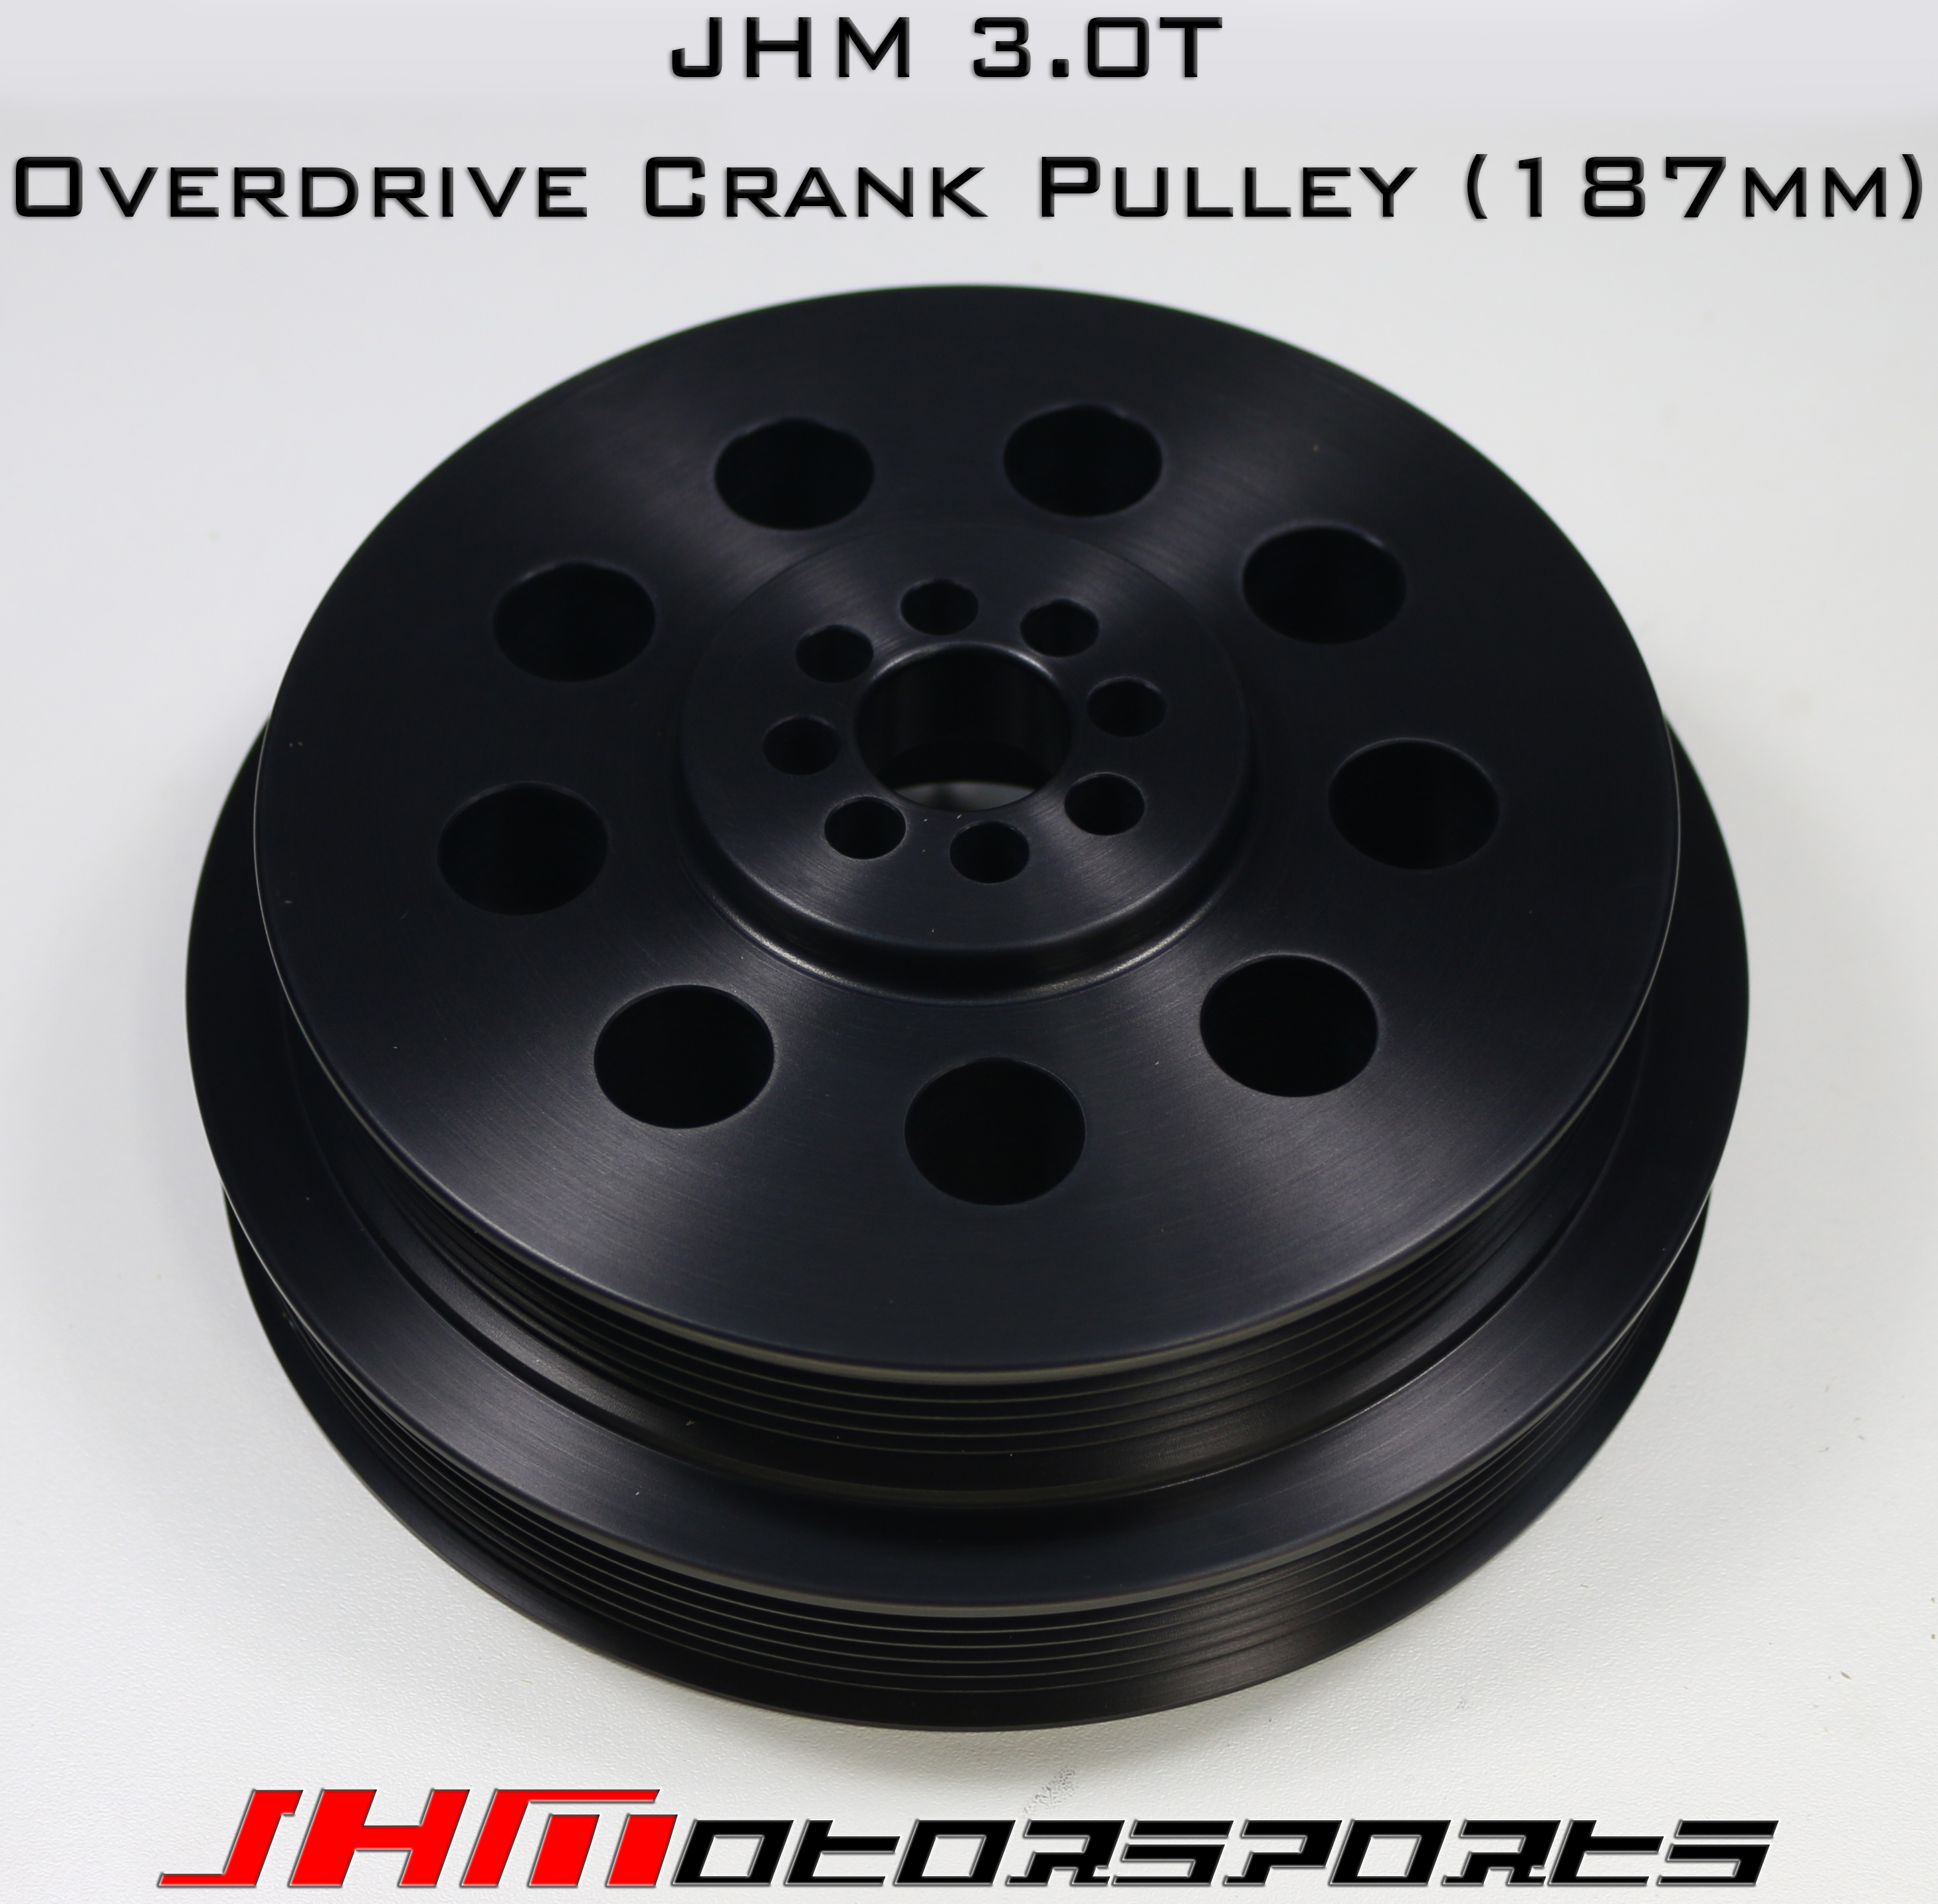 Audi JHM HD Overdrive Lightweight Crank Pulley for 3.0T